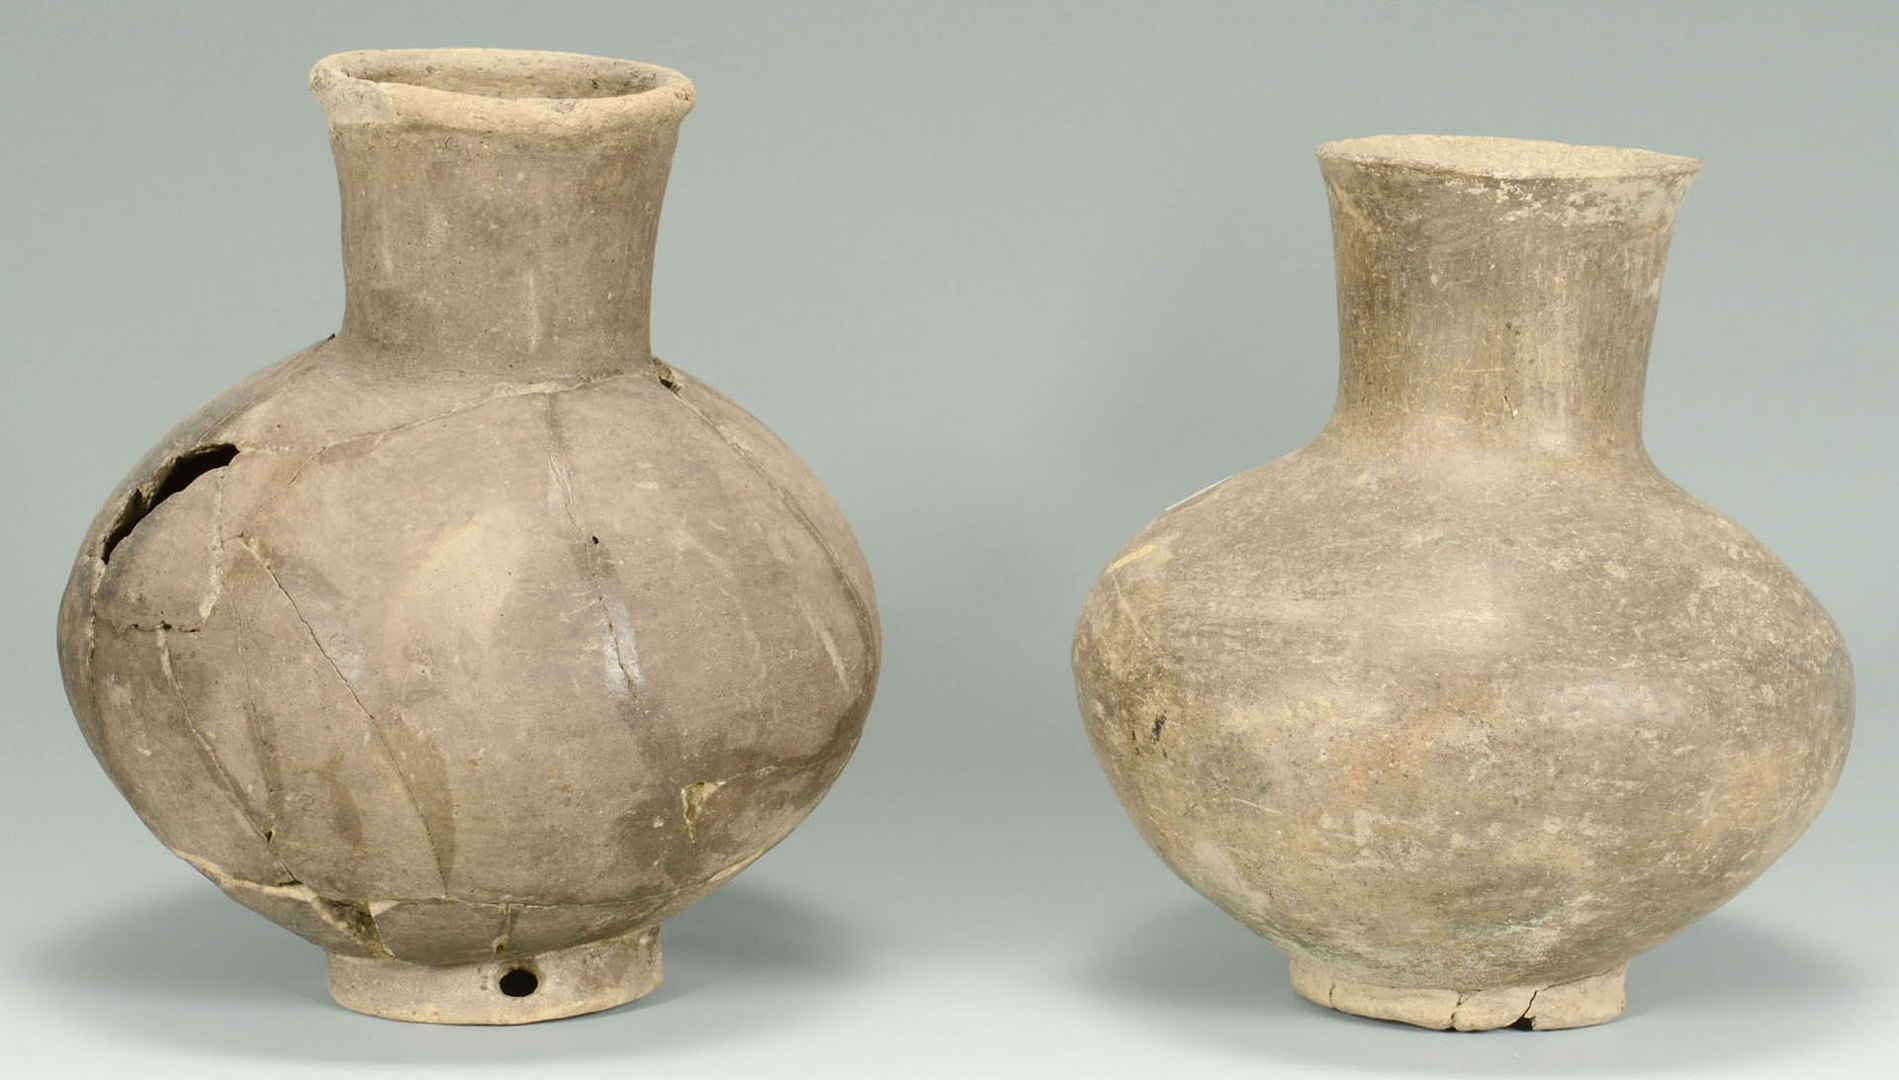 Lot 648: 2 Mississippian Greyware Pottery Bottles on Bases